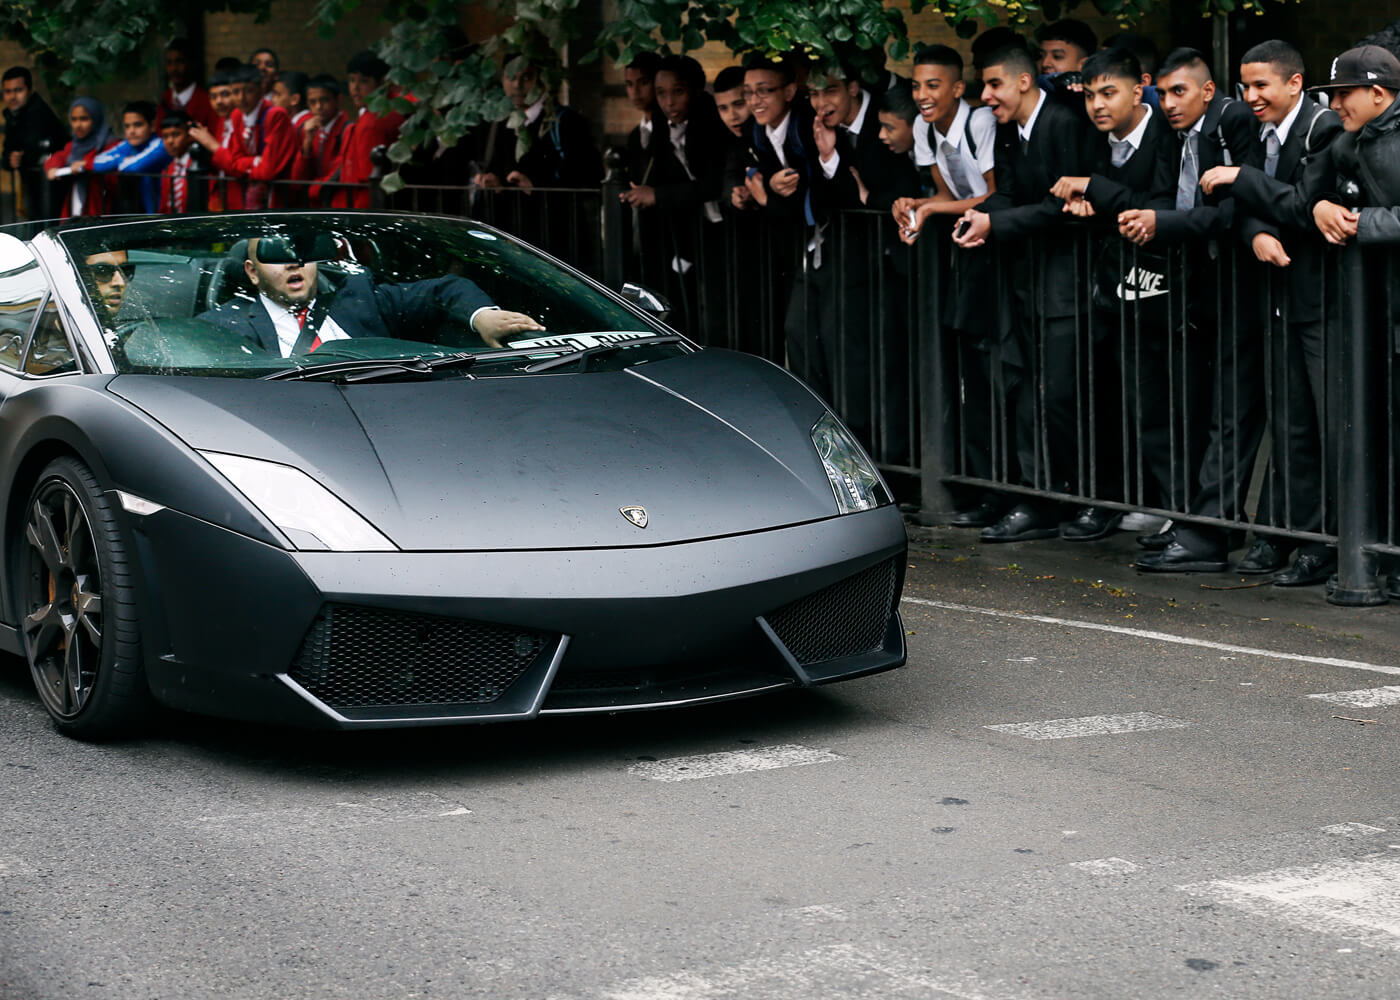 Students watch as Ujjol Hussain, 16, is driven past in a hired Lamborghini during the supercar parade at Swanlea school graduation day.